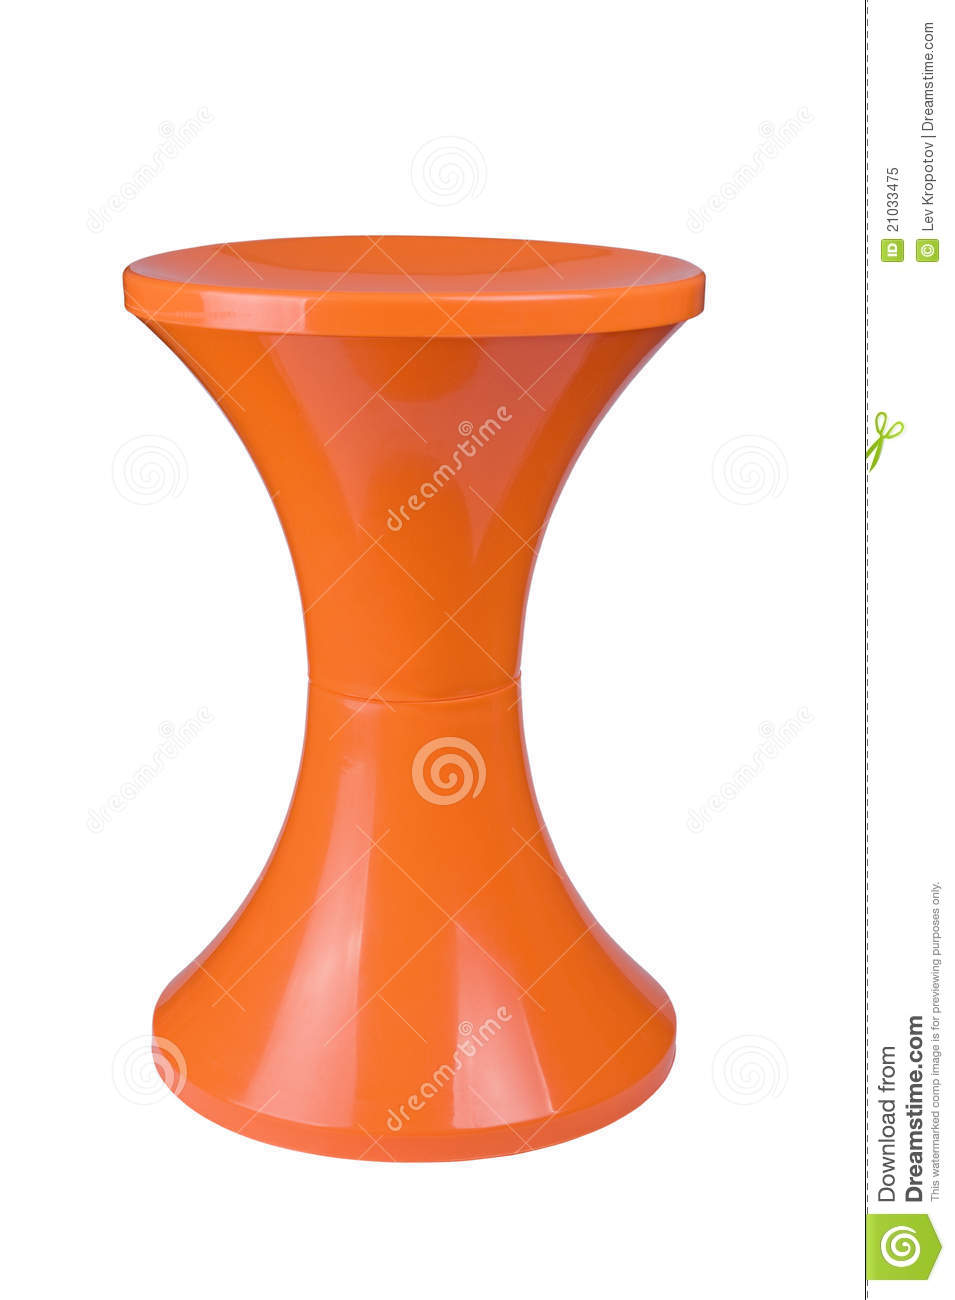 Plastic Stool Royalty Free Stock Photo  Image 21033475